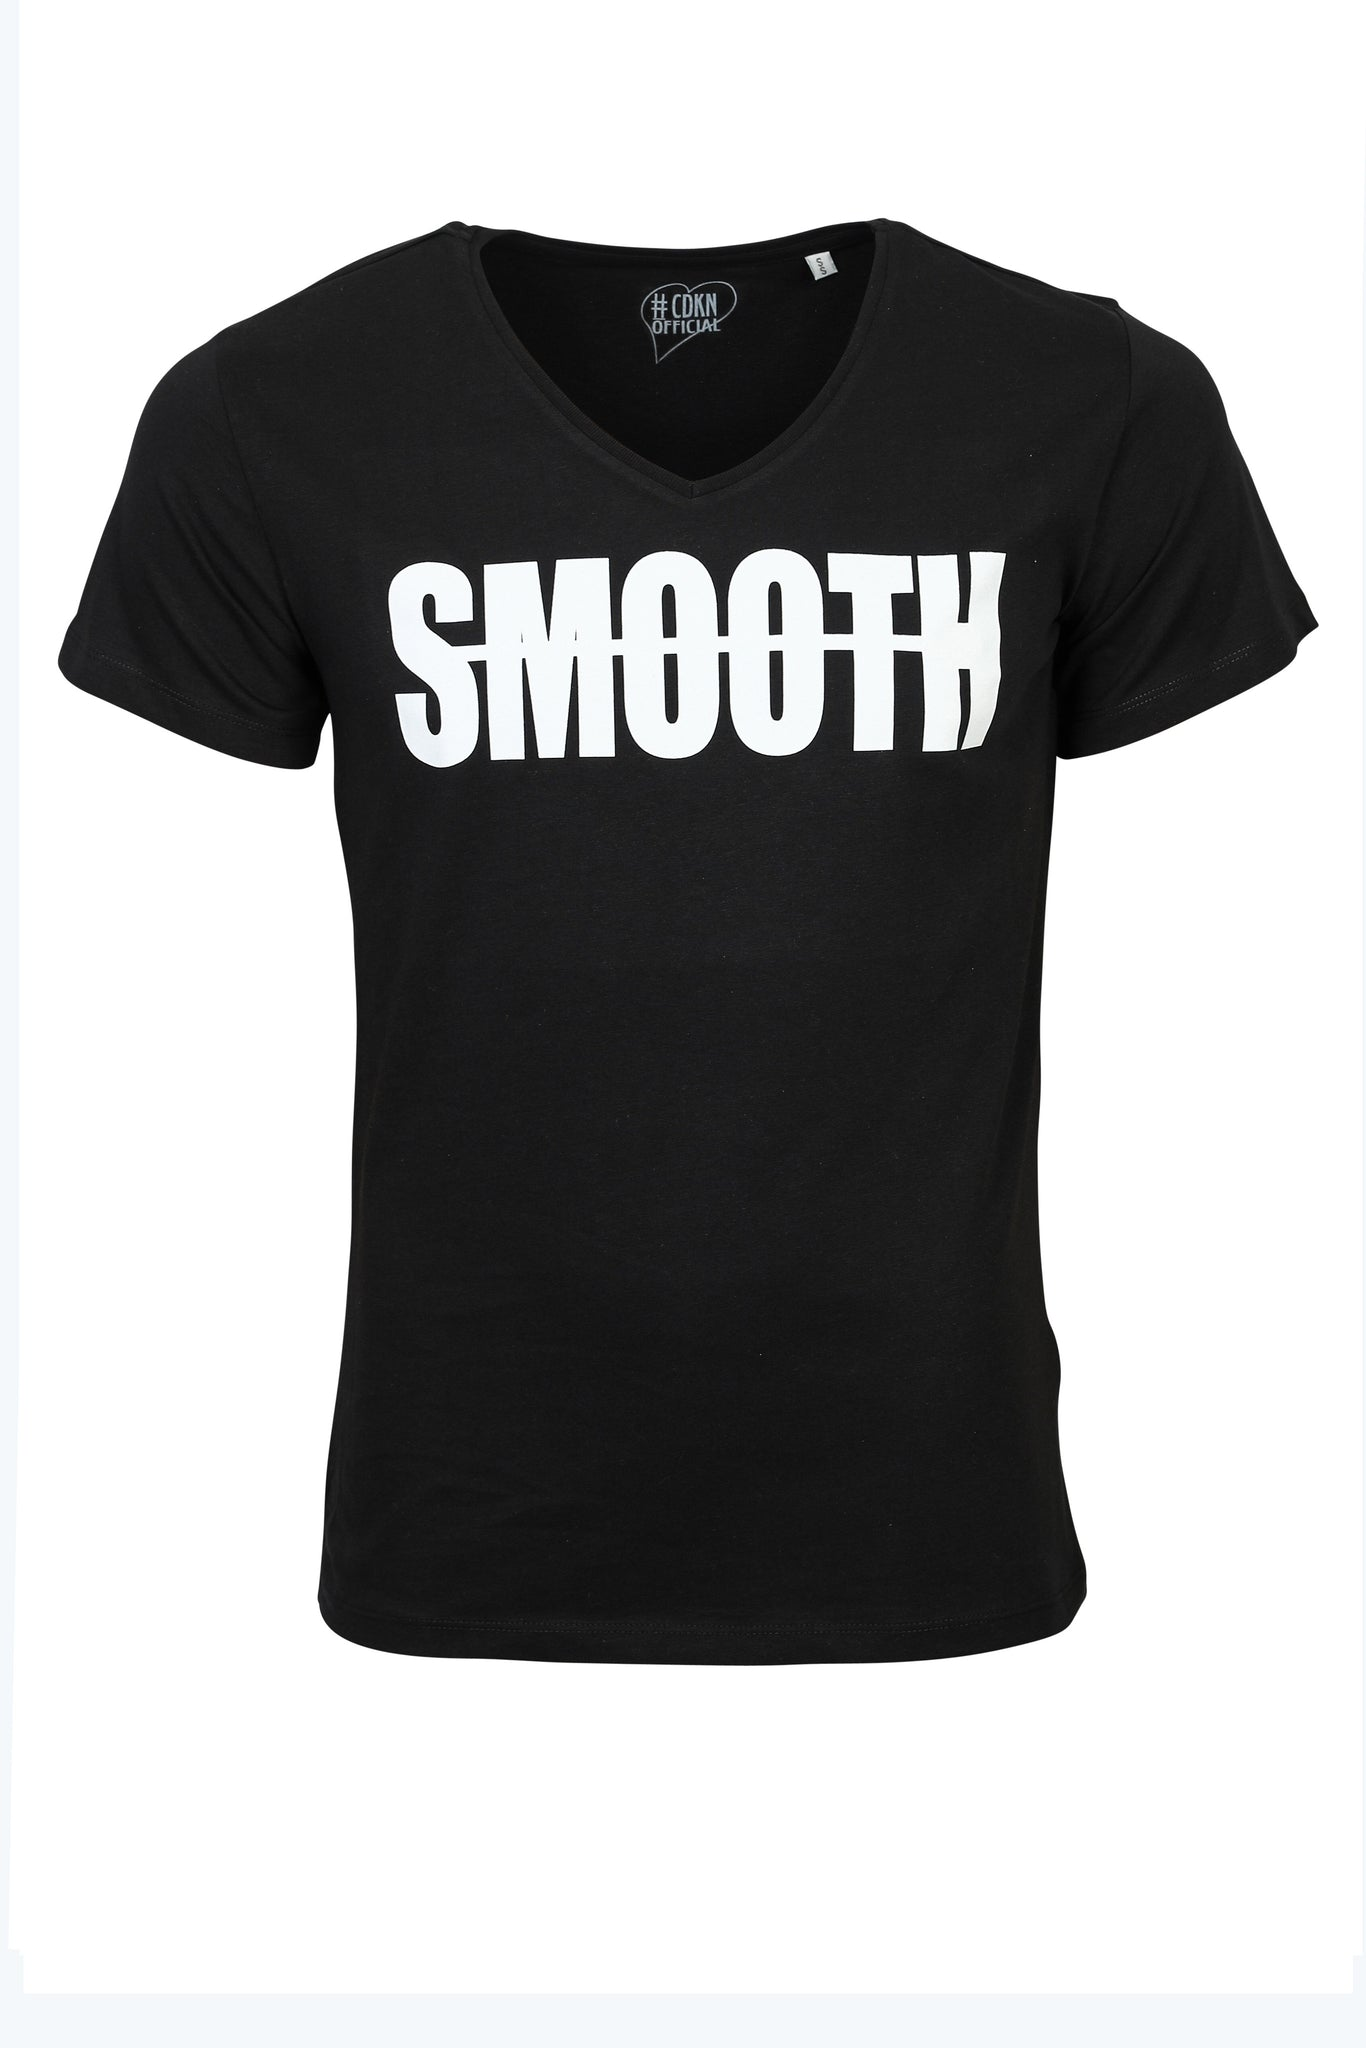 Smooth Criminal - V-neck Tee